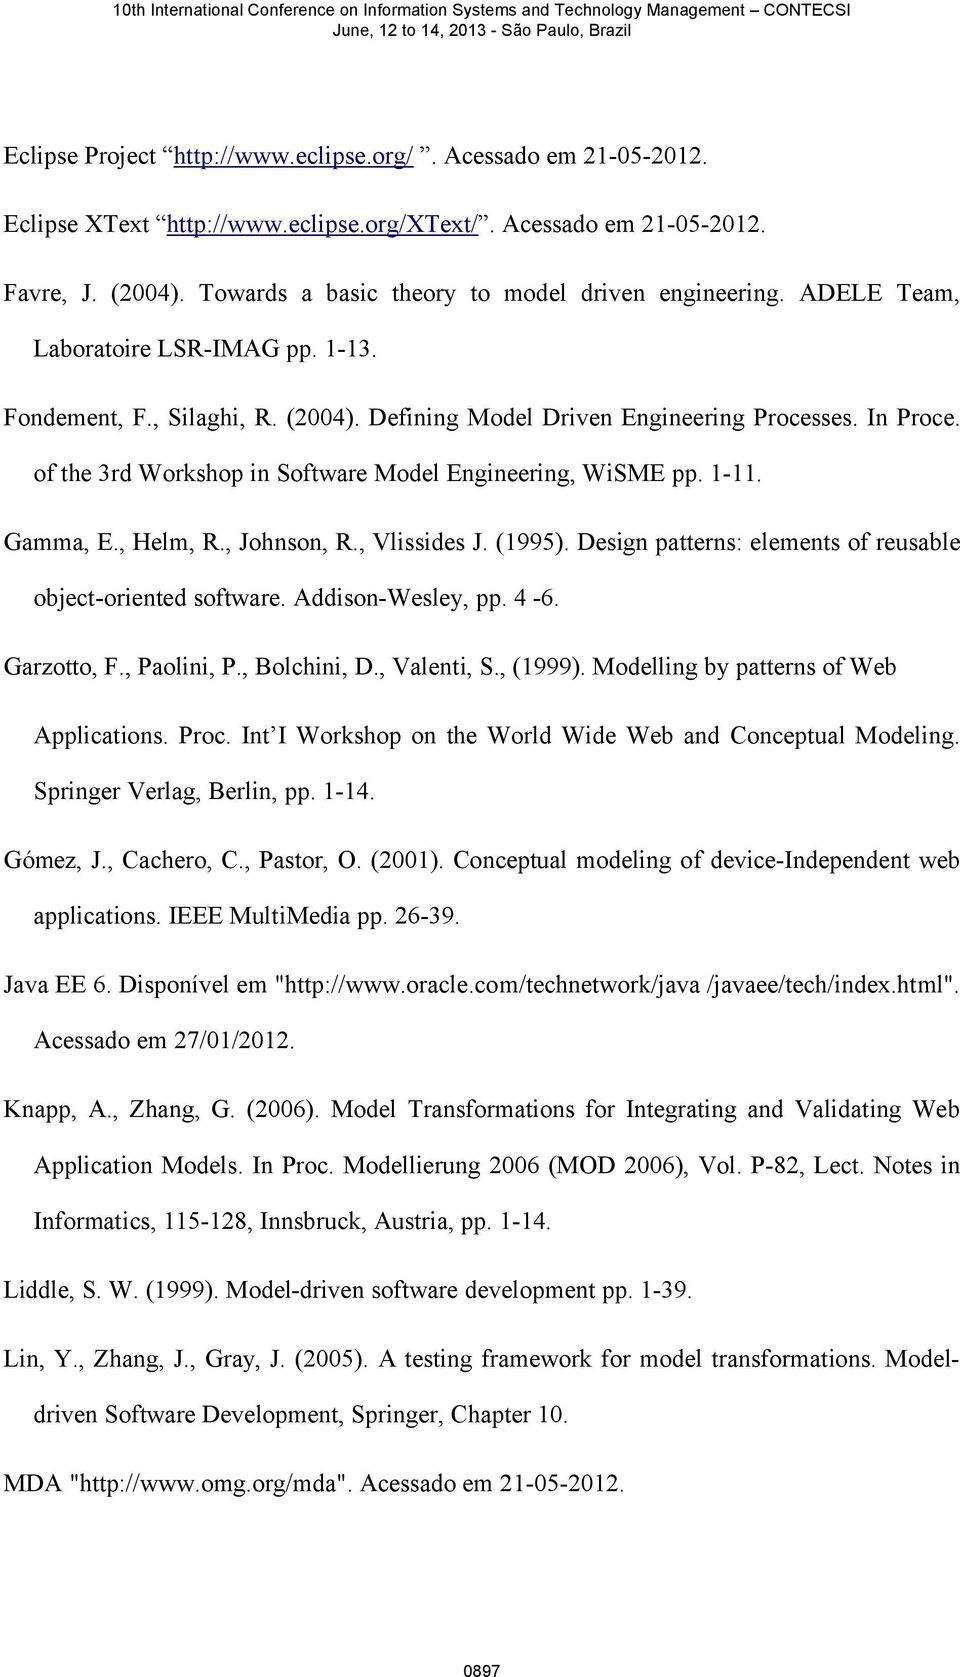 of the 3rd Workshop in Software Model Engineering, WiSME pp. 1-11. Gamma, E., Helm, R., Johnson, R., Vlissides J. (1995). Design patterns: elements of reusable object-oriented software.